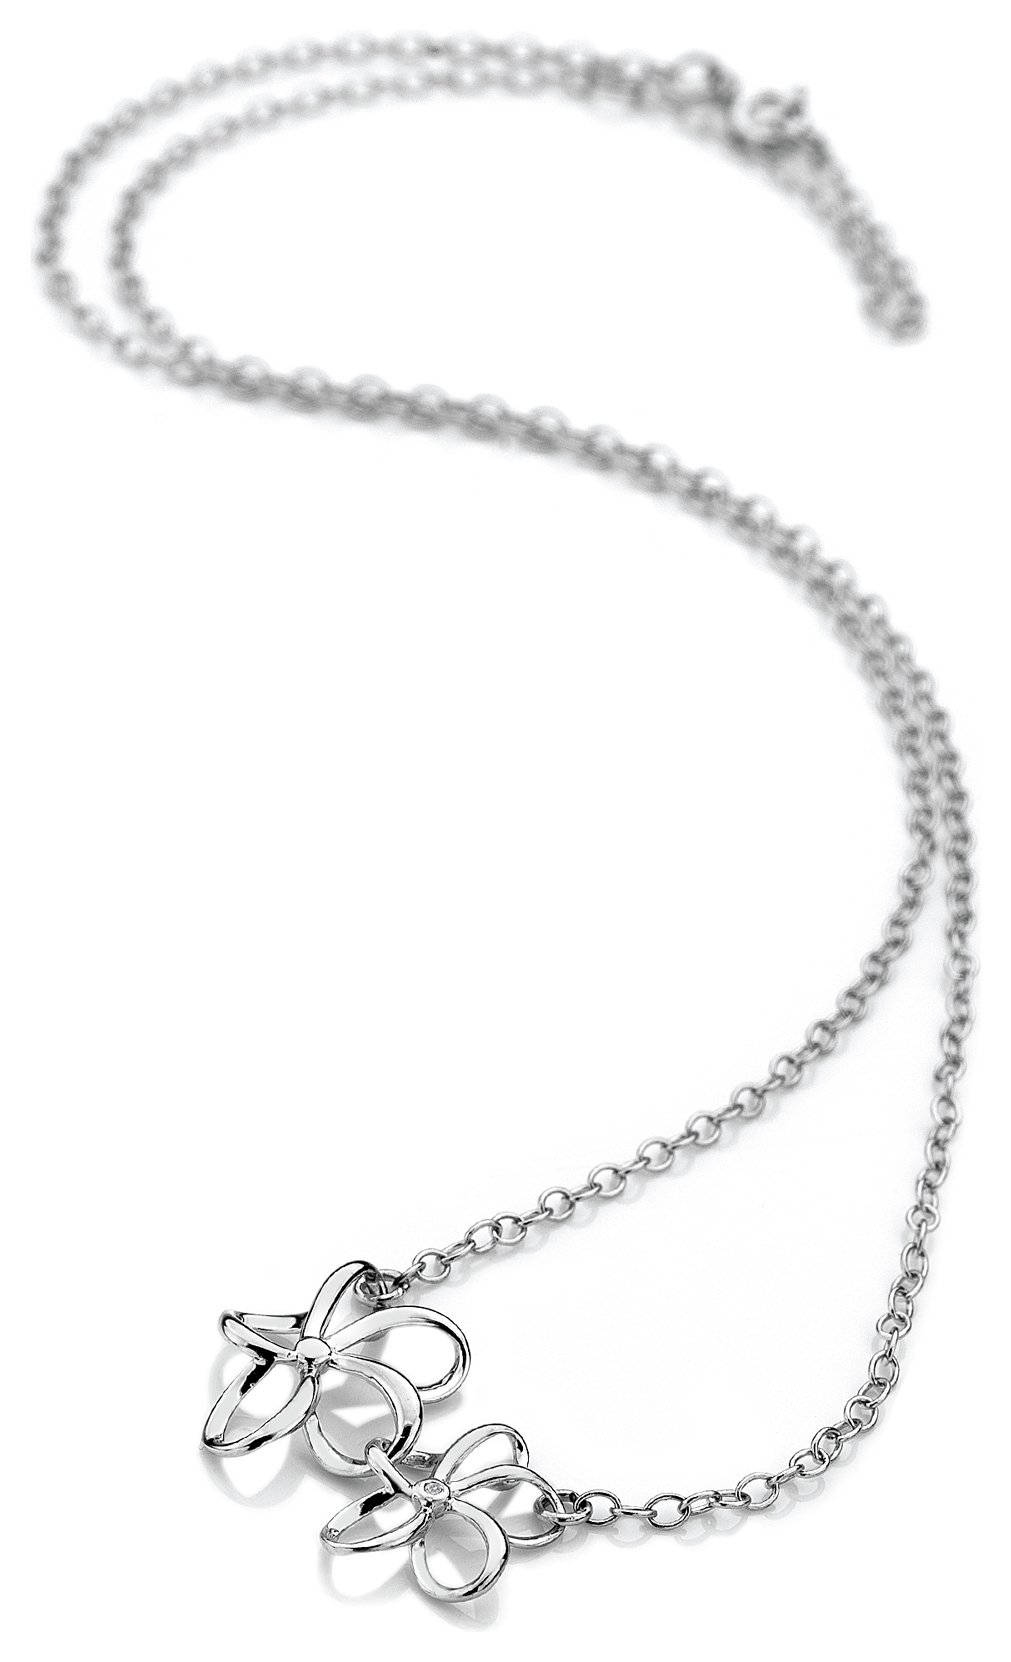 Image of Accents by Hot Diamonds - Silver Open Flower Necklace.